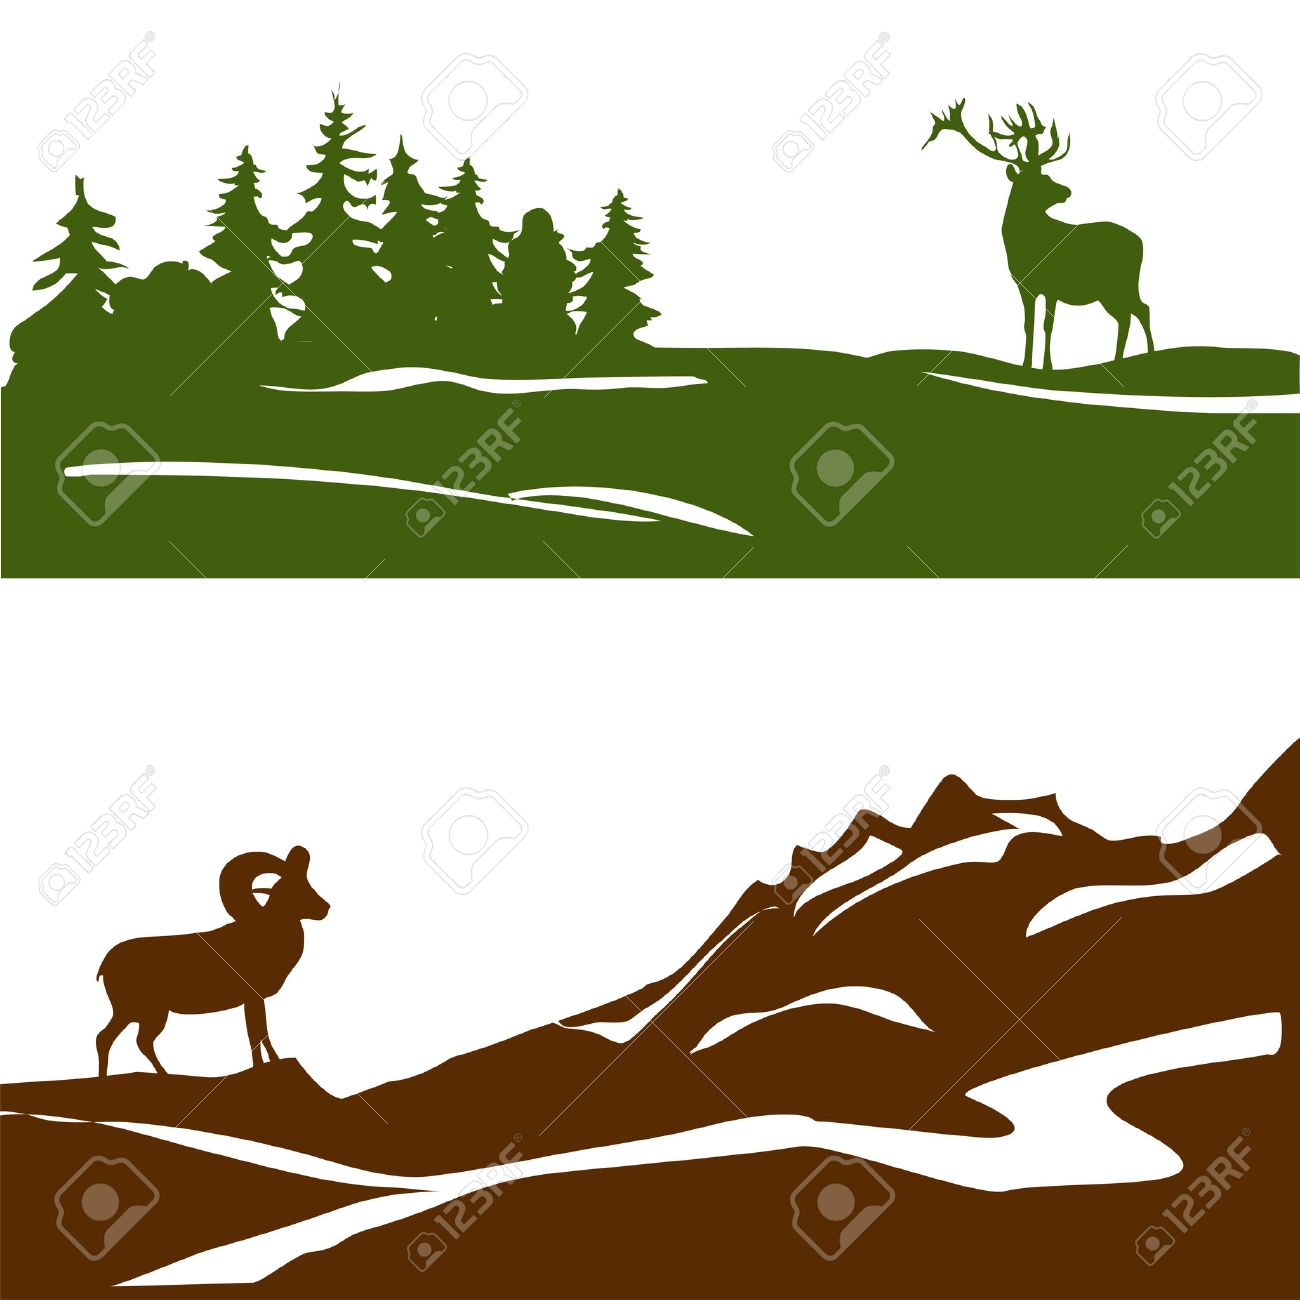 banner with the mountain landscape and forest, silhouette. vector illustration Standard-Bild - 31688487